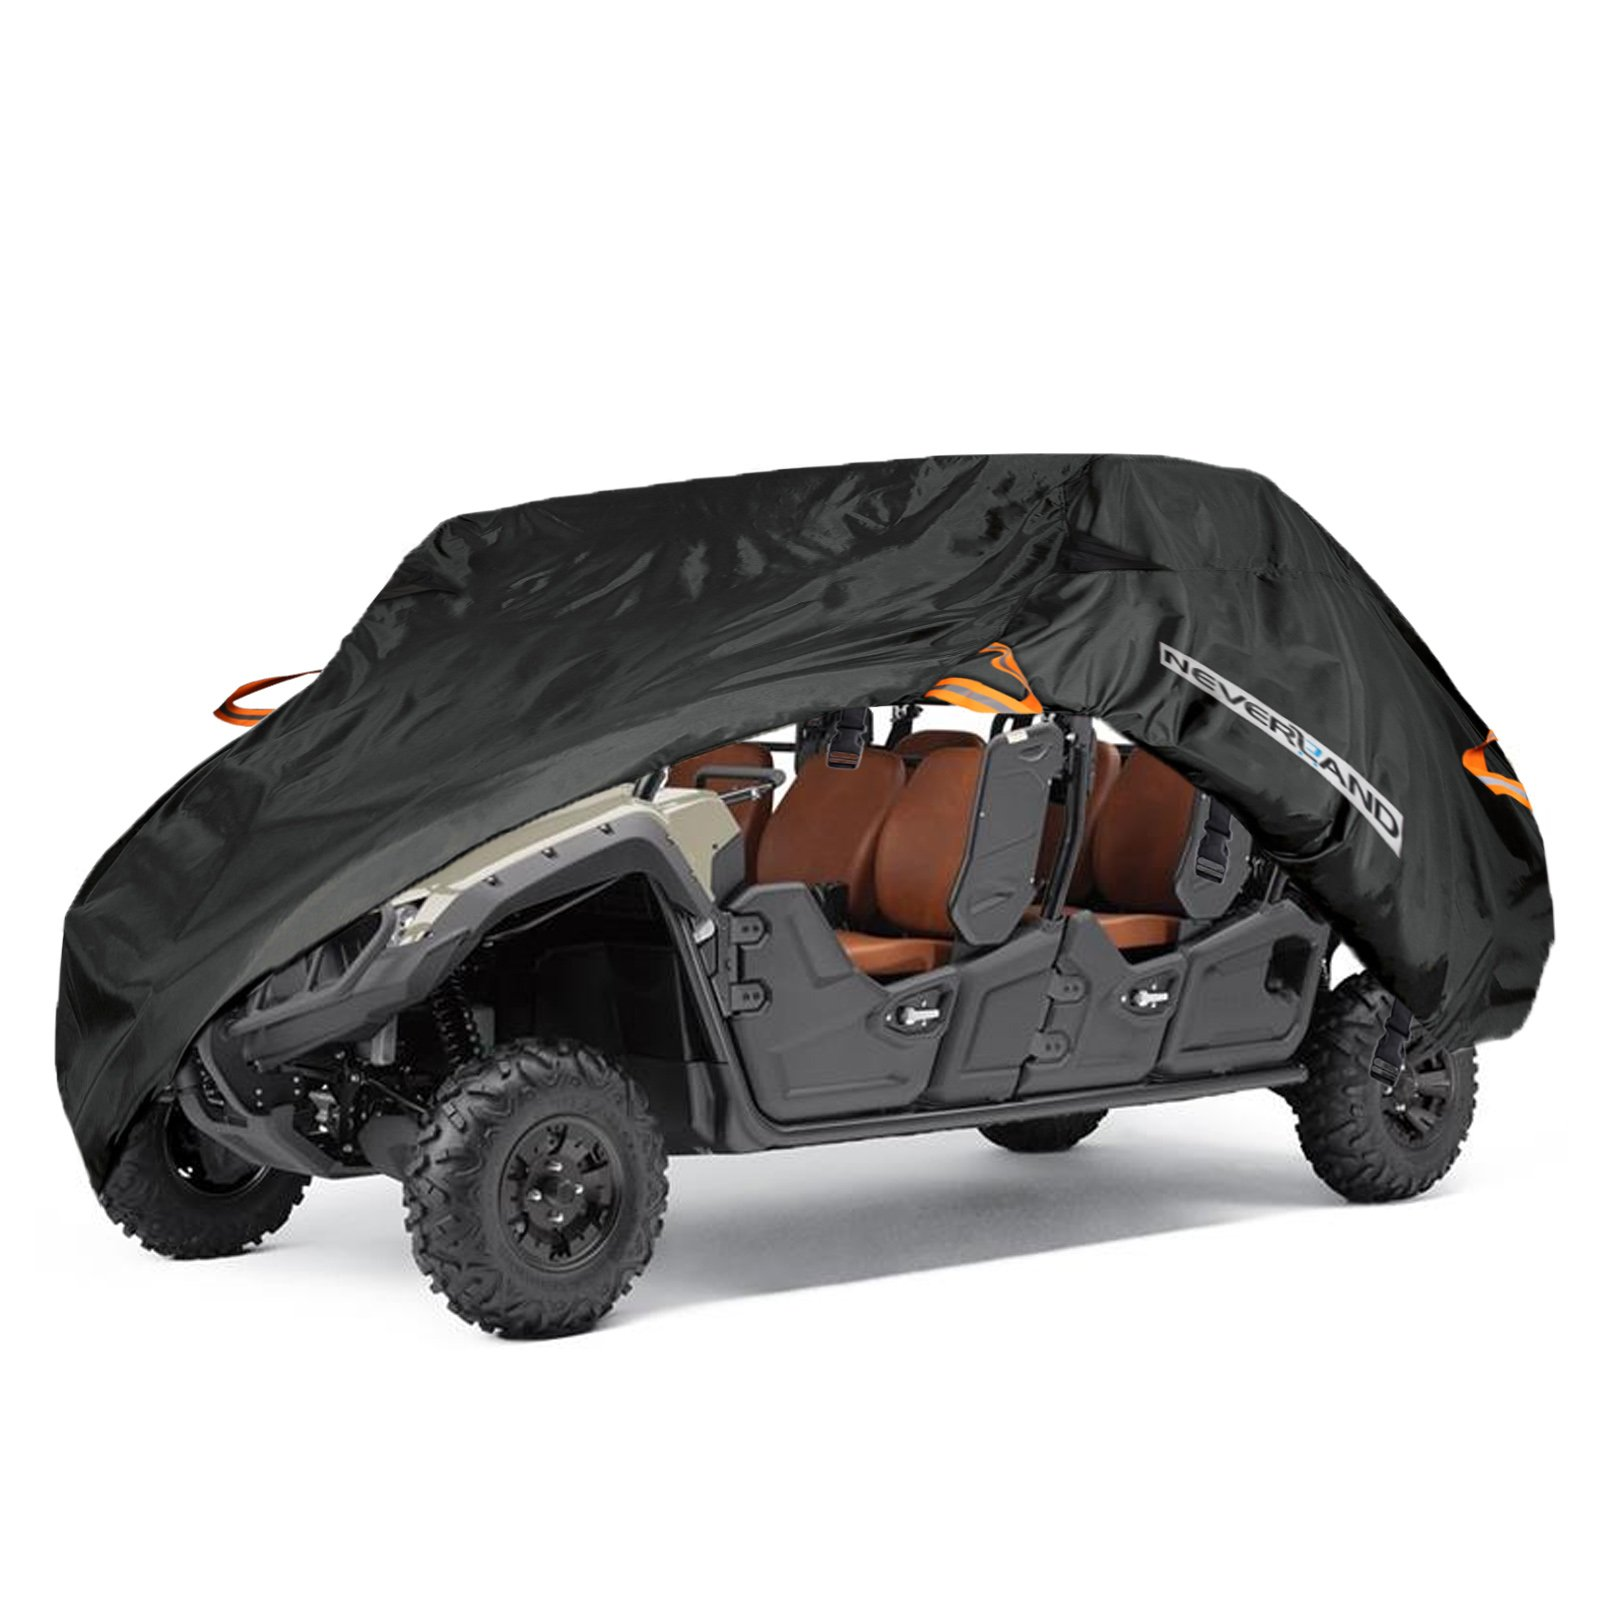 NEVERLAND UTV Cover,Waterproof Heavy Oxford Material for Yamaha Viking VI Ranch Can Am Maverick Arctic Cat Textron Off Road 4-6 Passenger